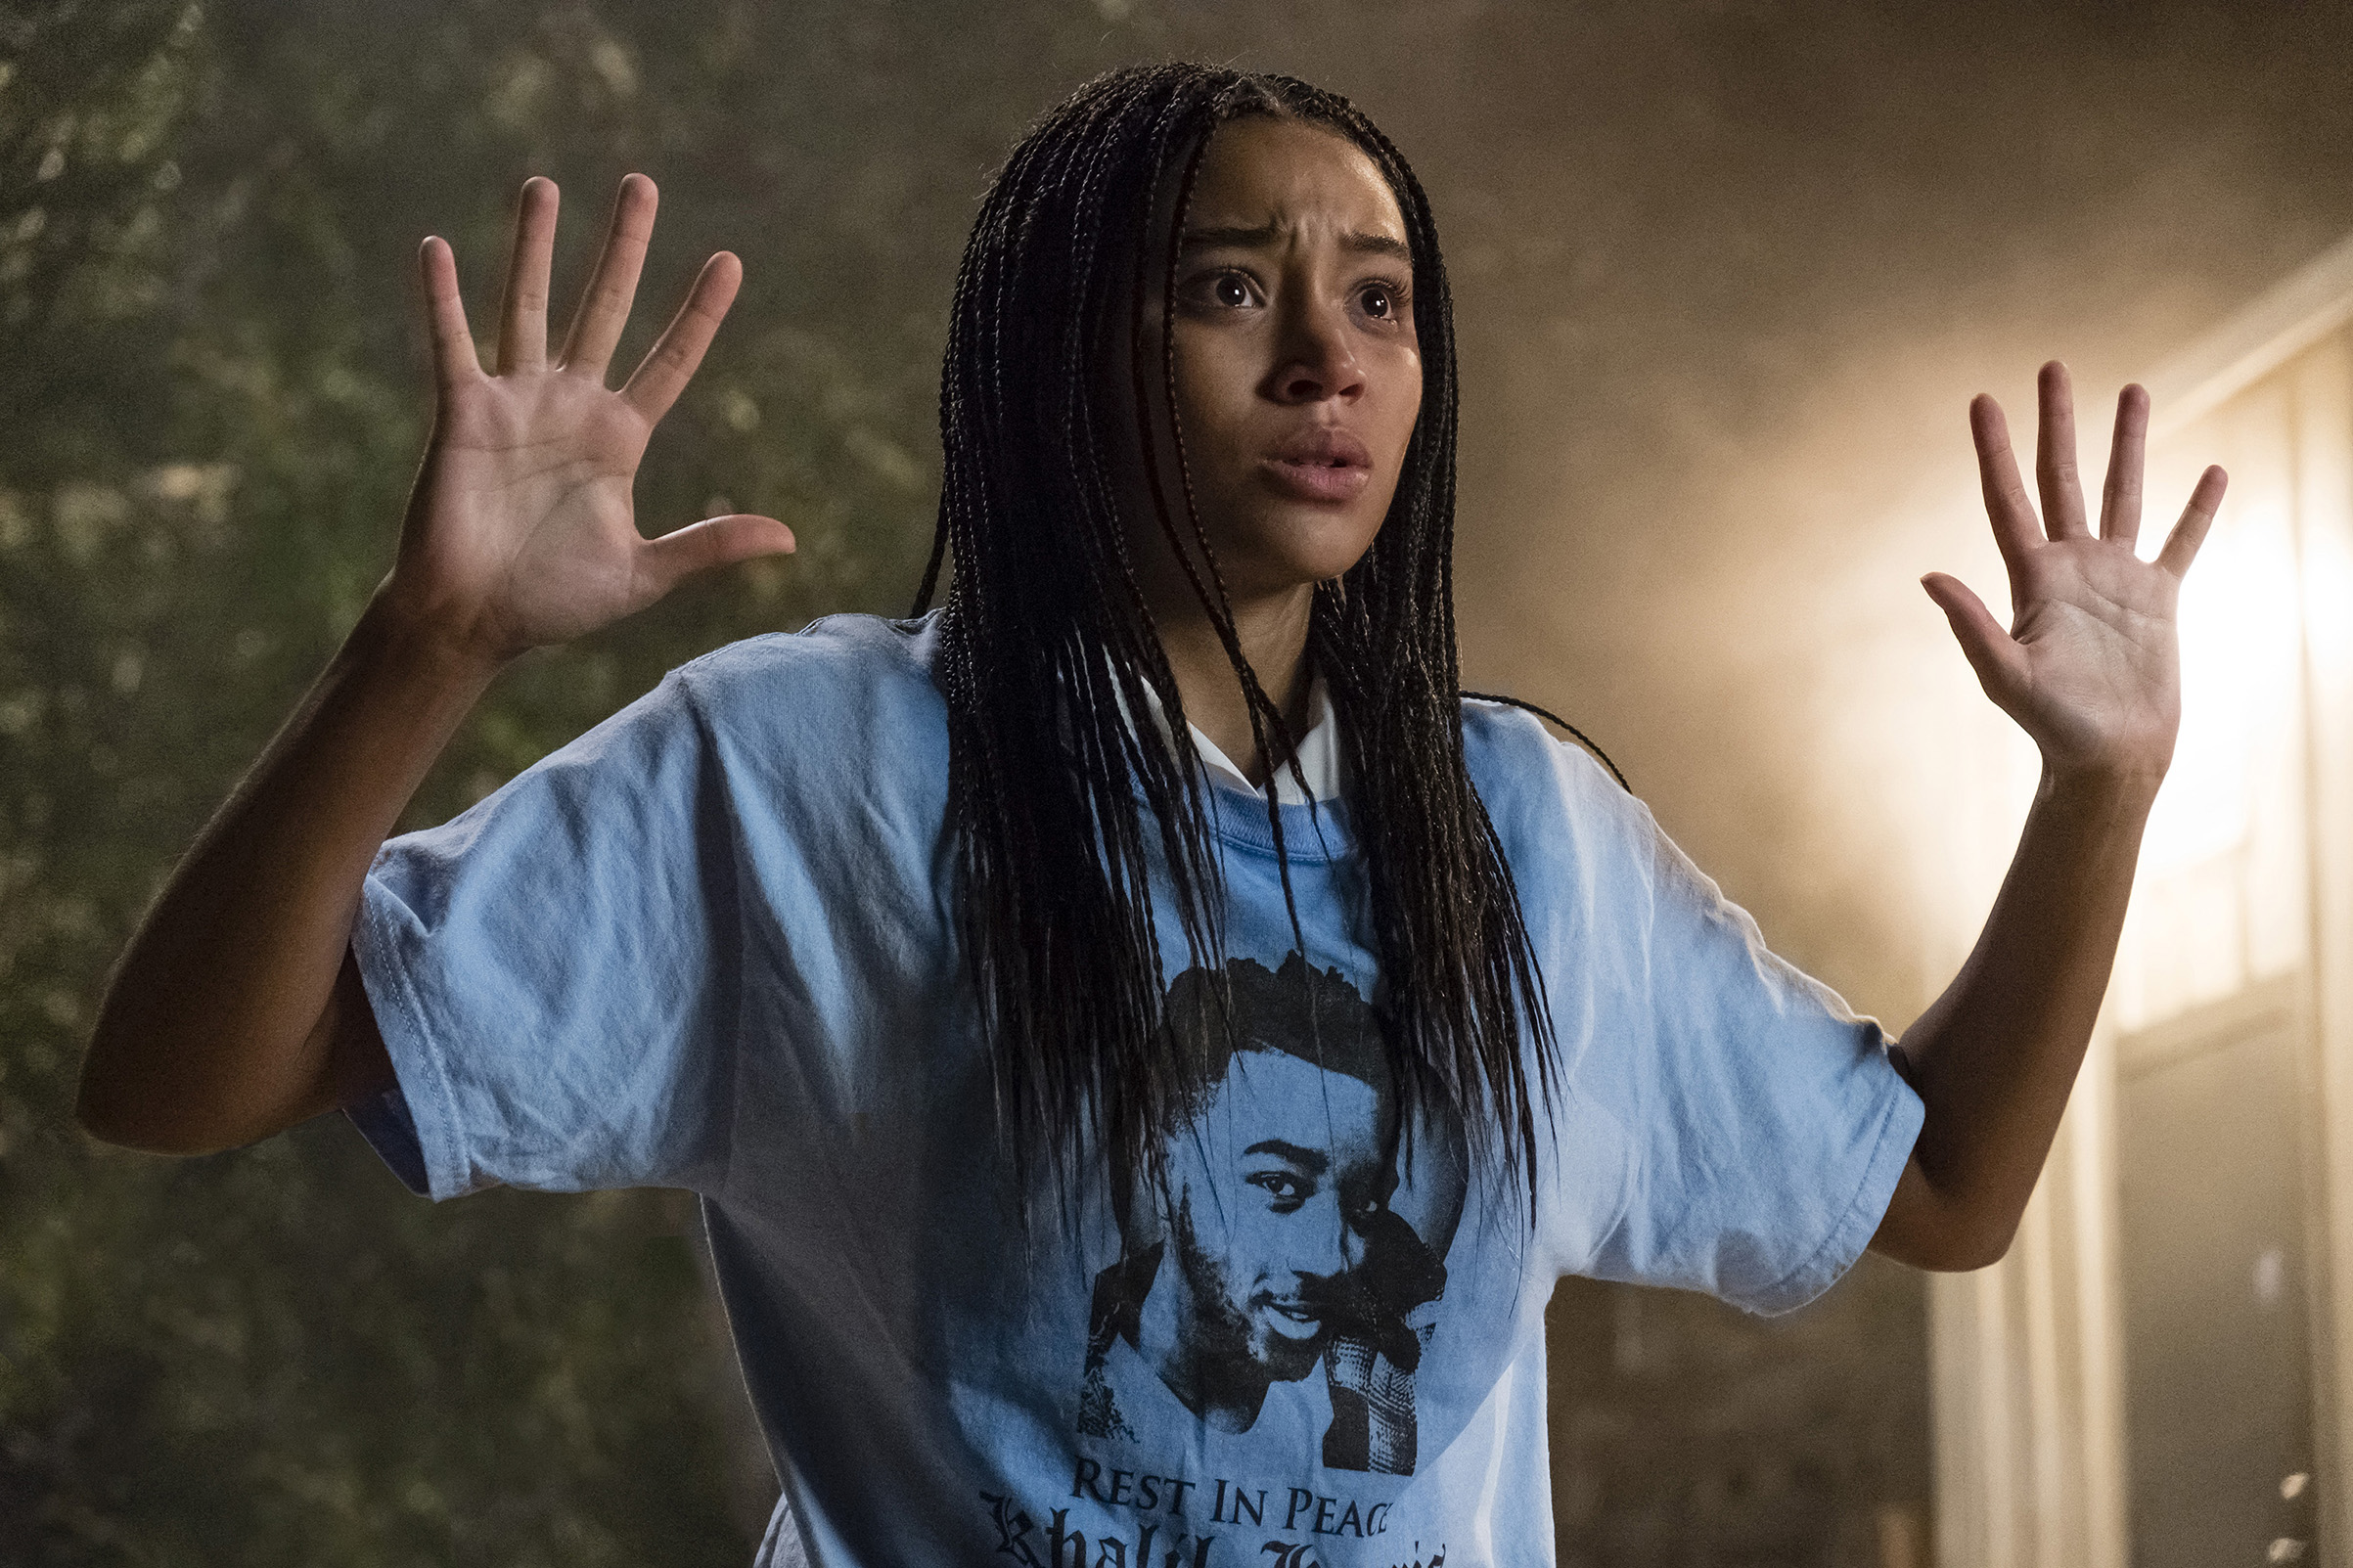 Amandla Stenberg shines in this YA drama with a purpose